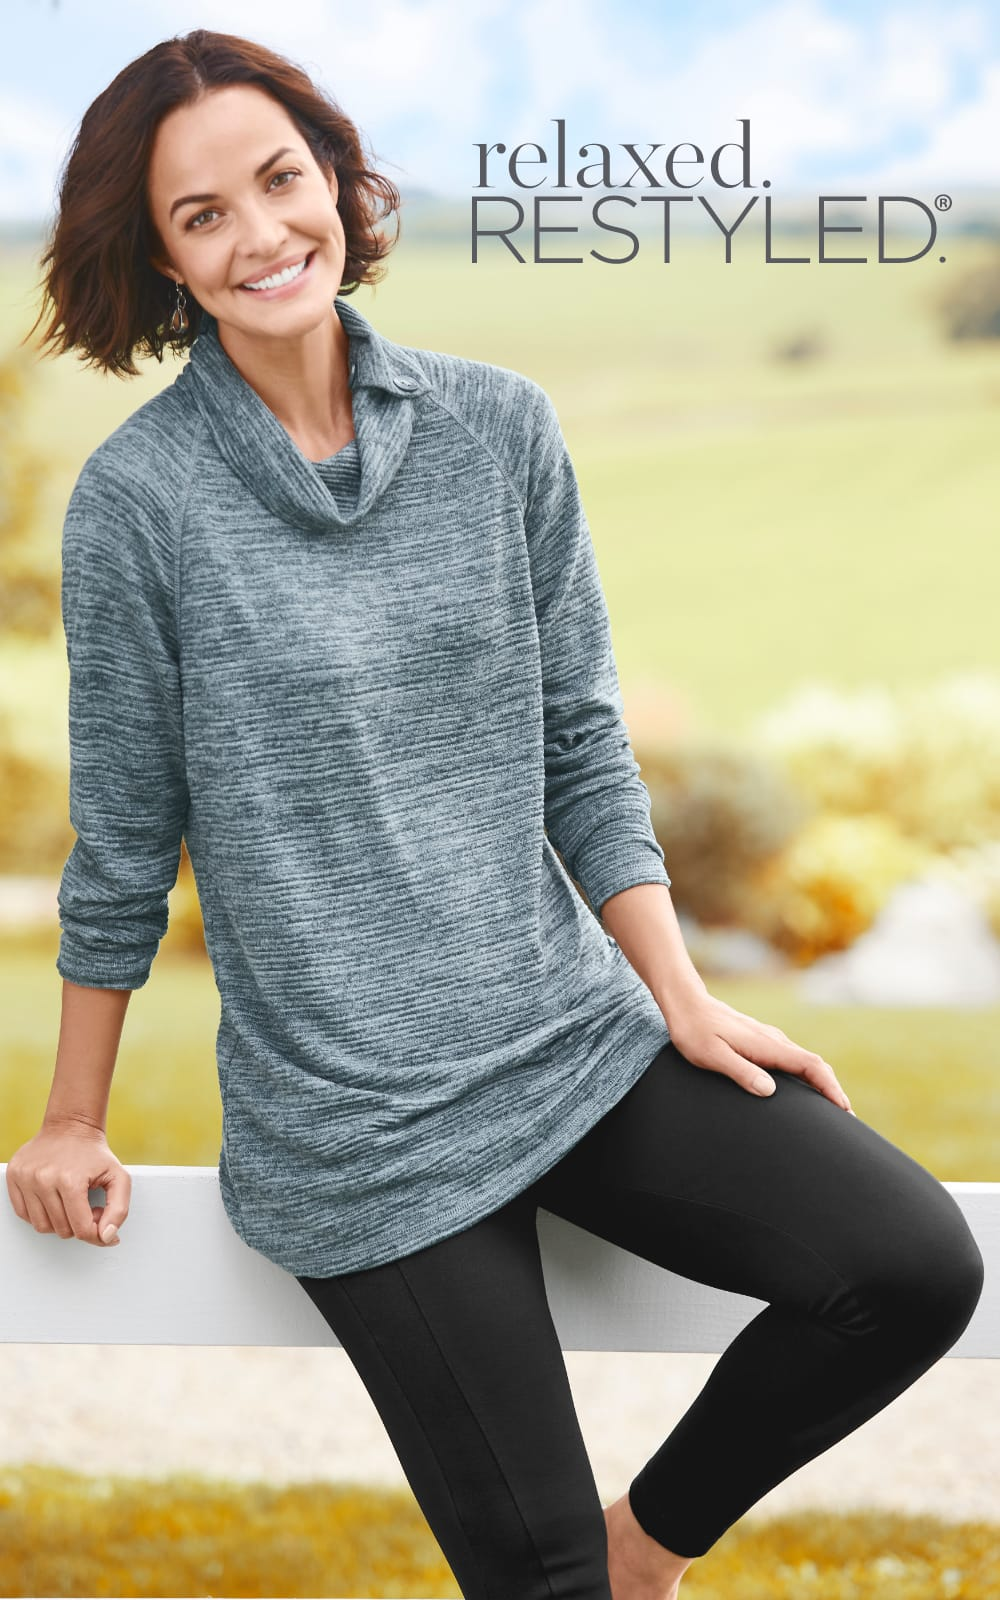 """relaxed.Restyled.® Our """"Relaxing With The Family"""" Outfit featuring relaxed.Restyled.® Rib Ottoman Split Neck, Signature Slimming Ponte Legging, and Oval Drop Earrings."""